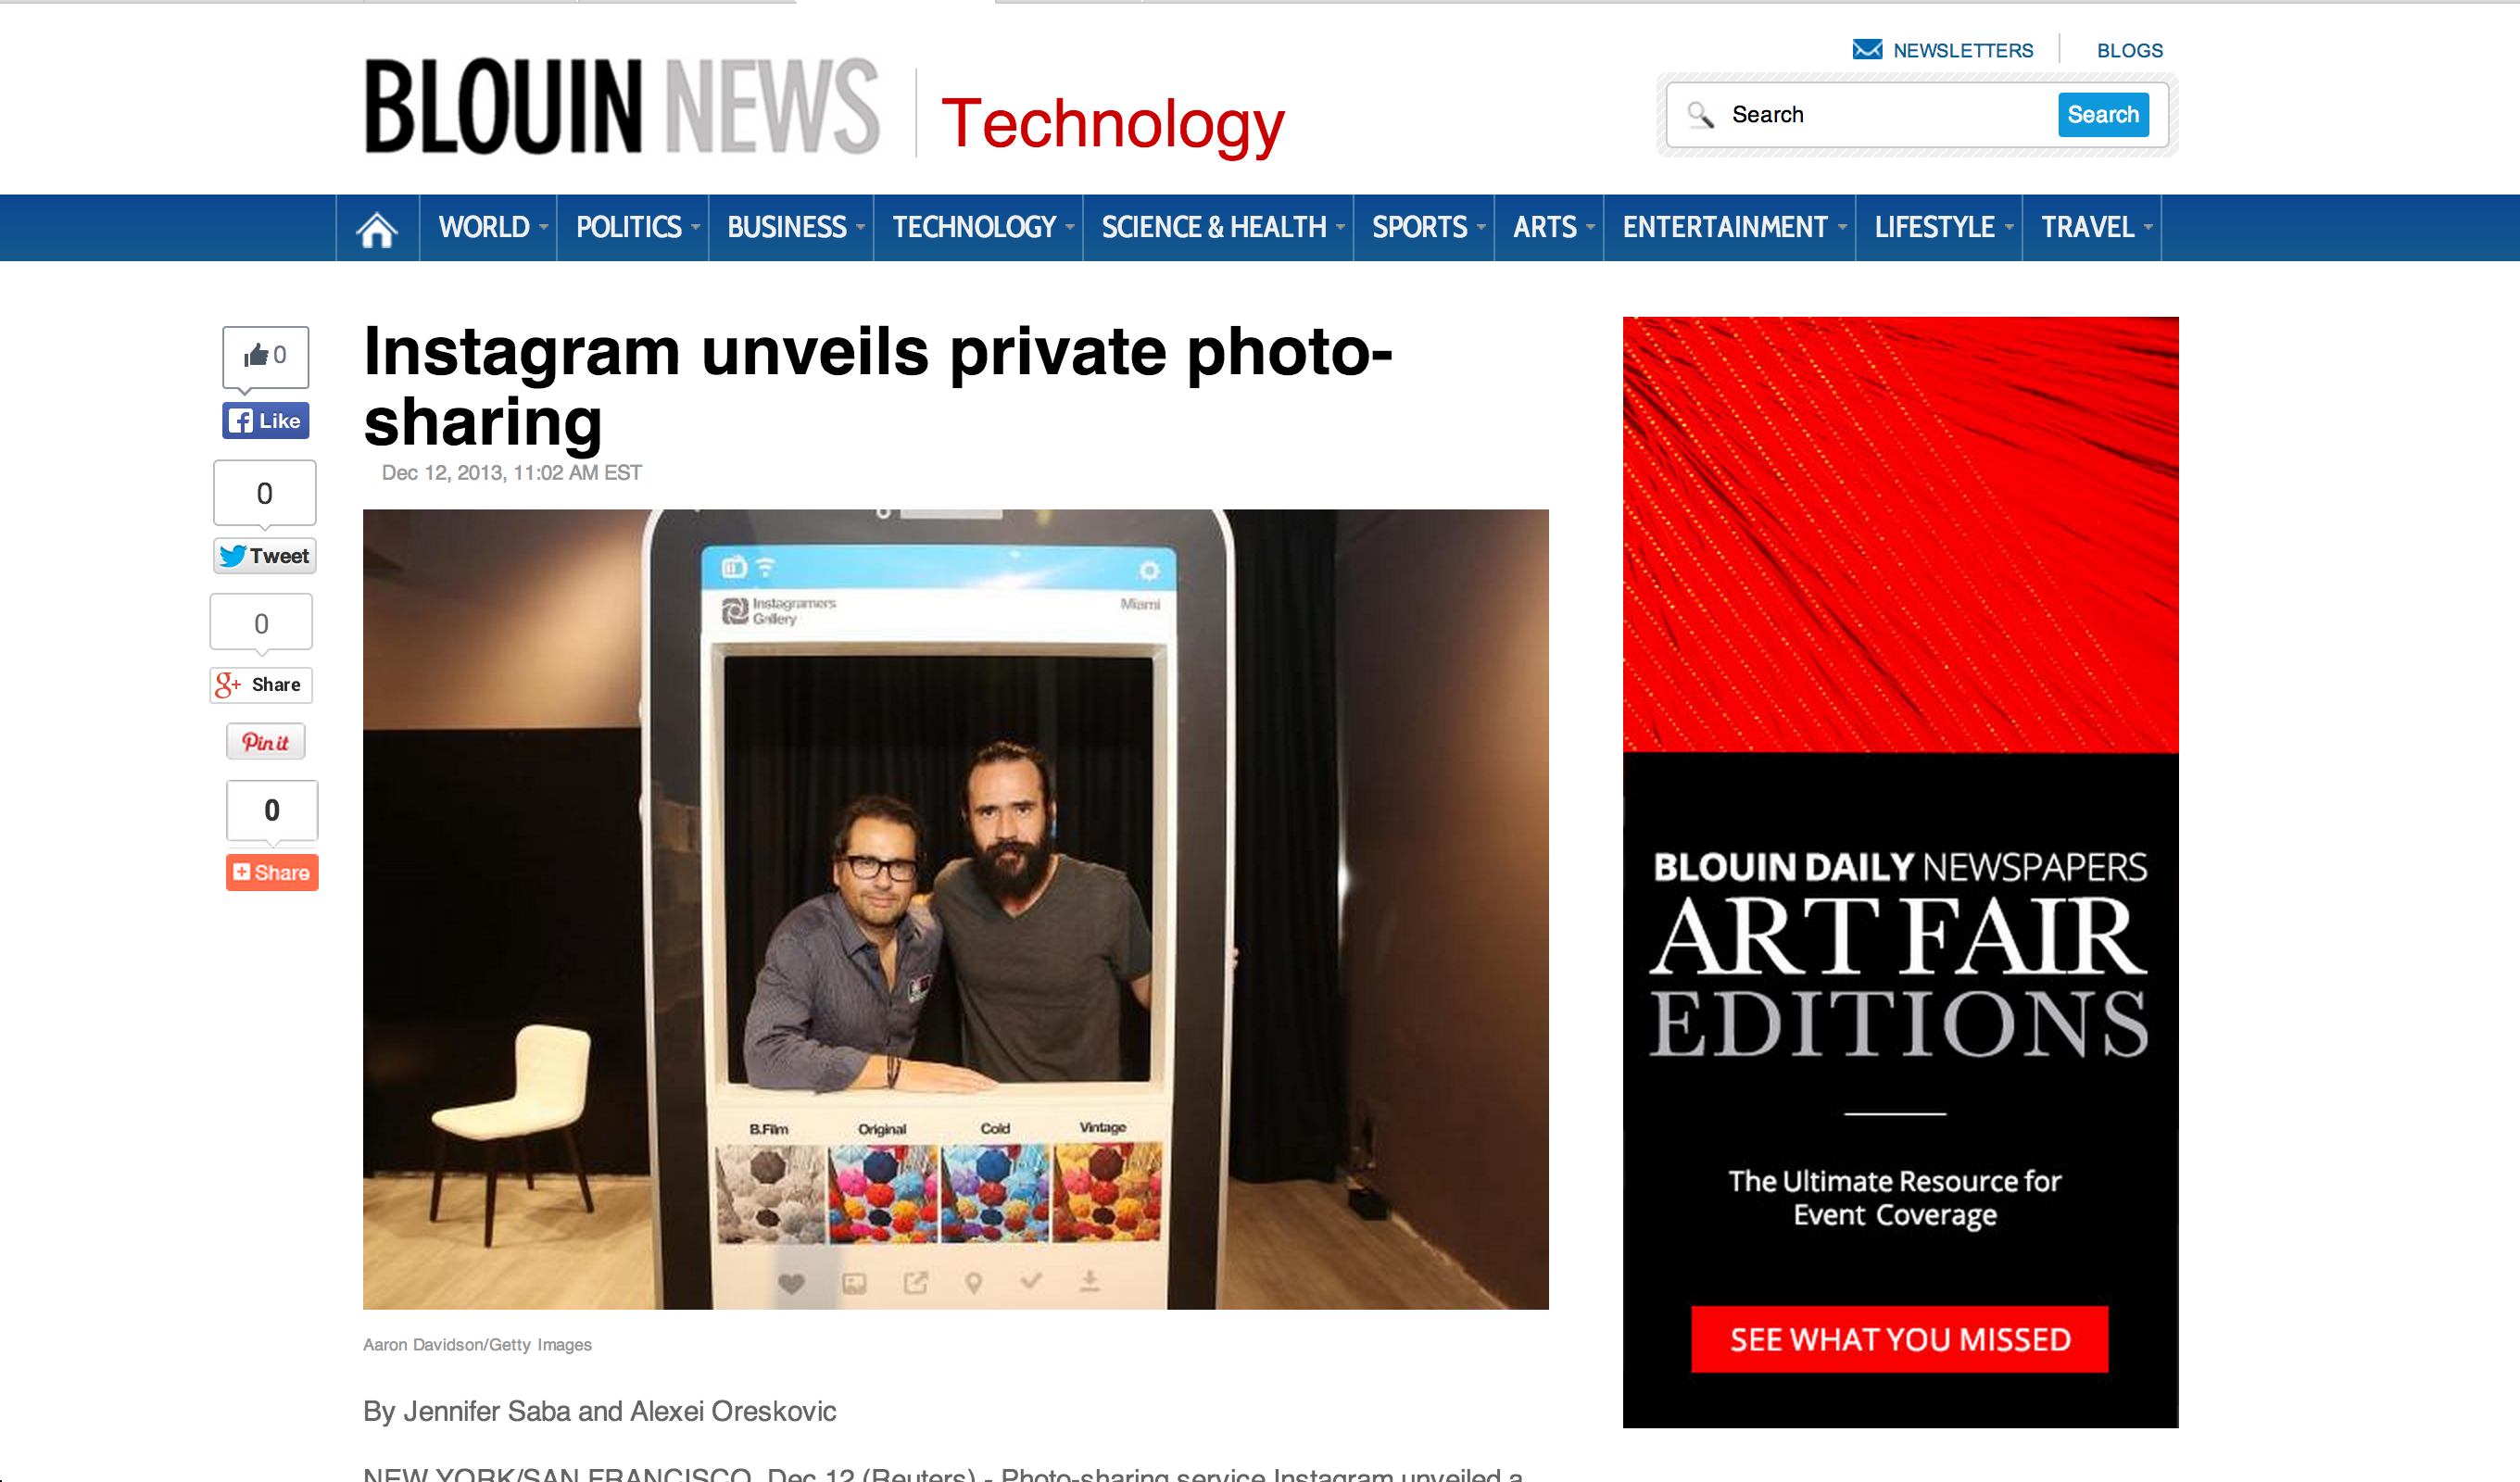 Blouin News Instagram unveils private photo-sharing